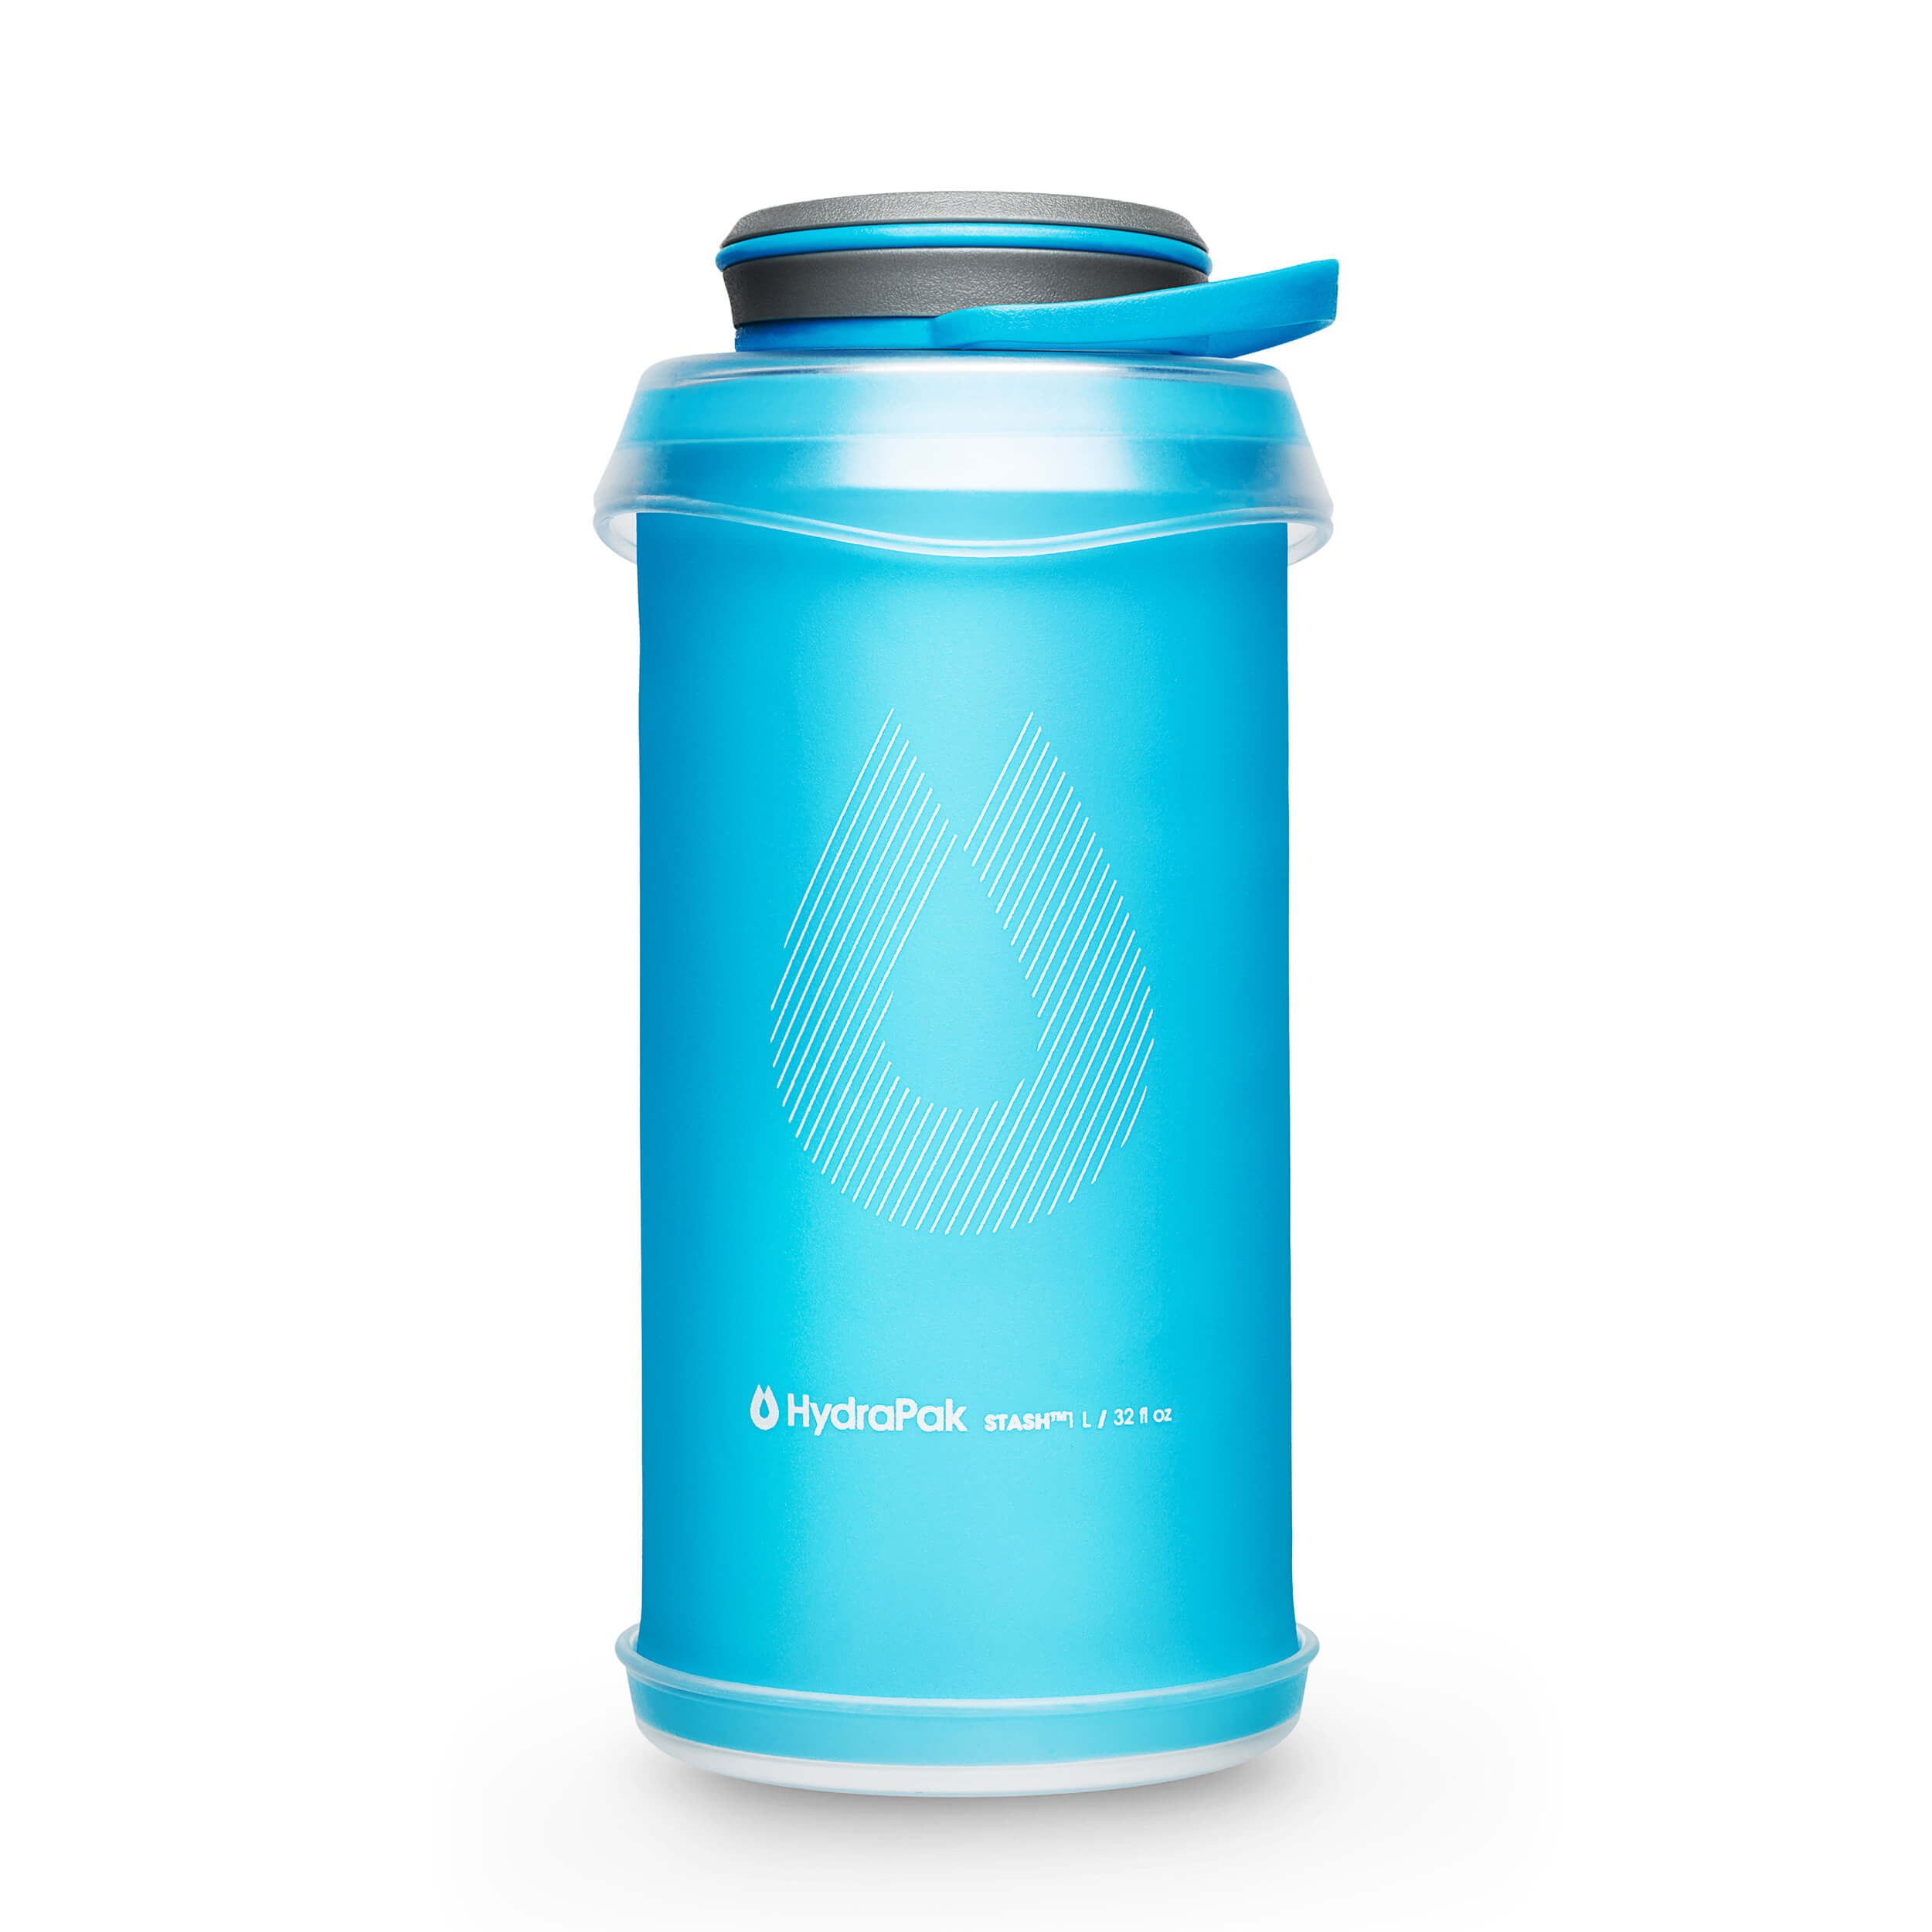 Hydrapak Stash Flexible Bottles Malibu-Blue